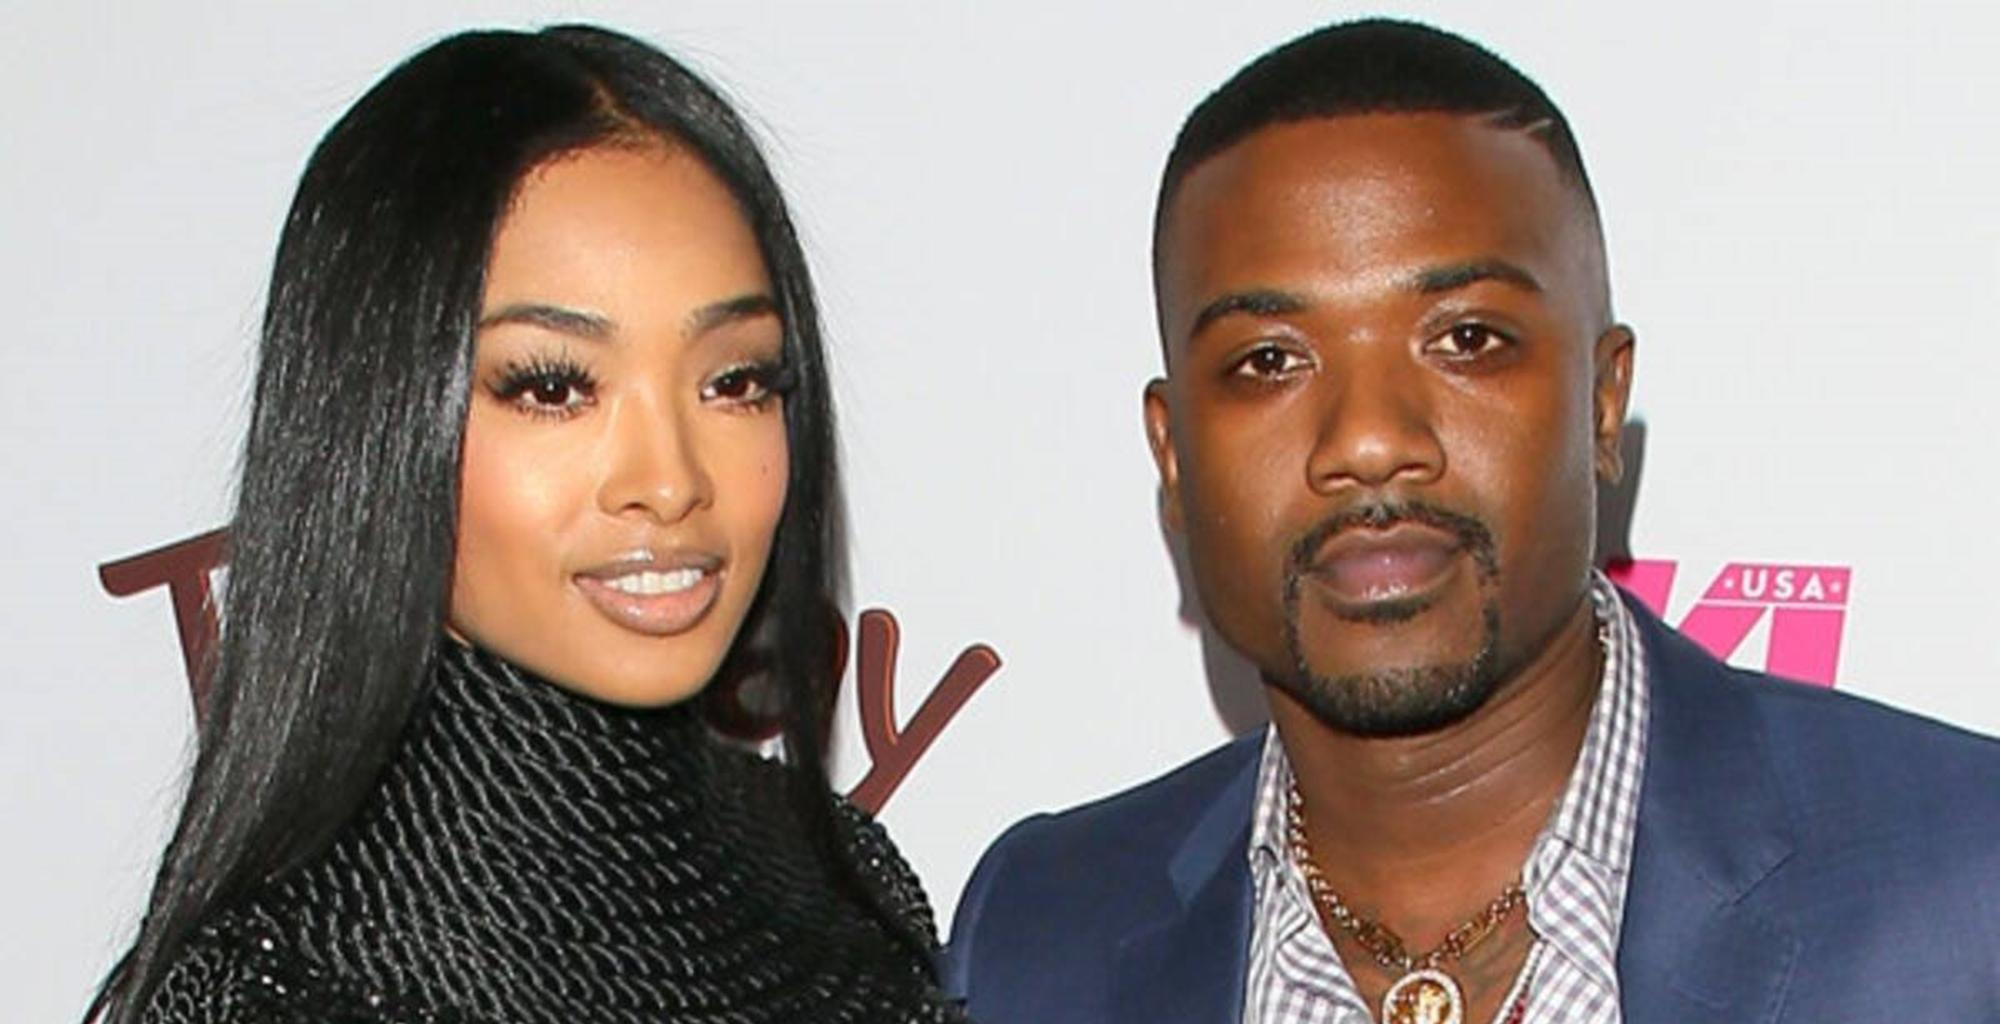 Princess Love Norwood Shows Off Thick Body In Bathing Suit Photo And Warns Ray J About The New Year After Welcoming Their Baby Boy, Epik